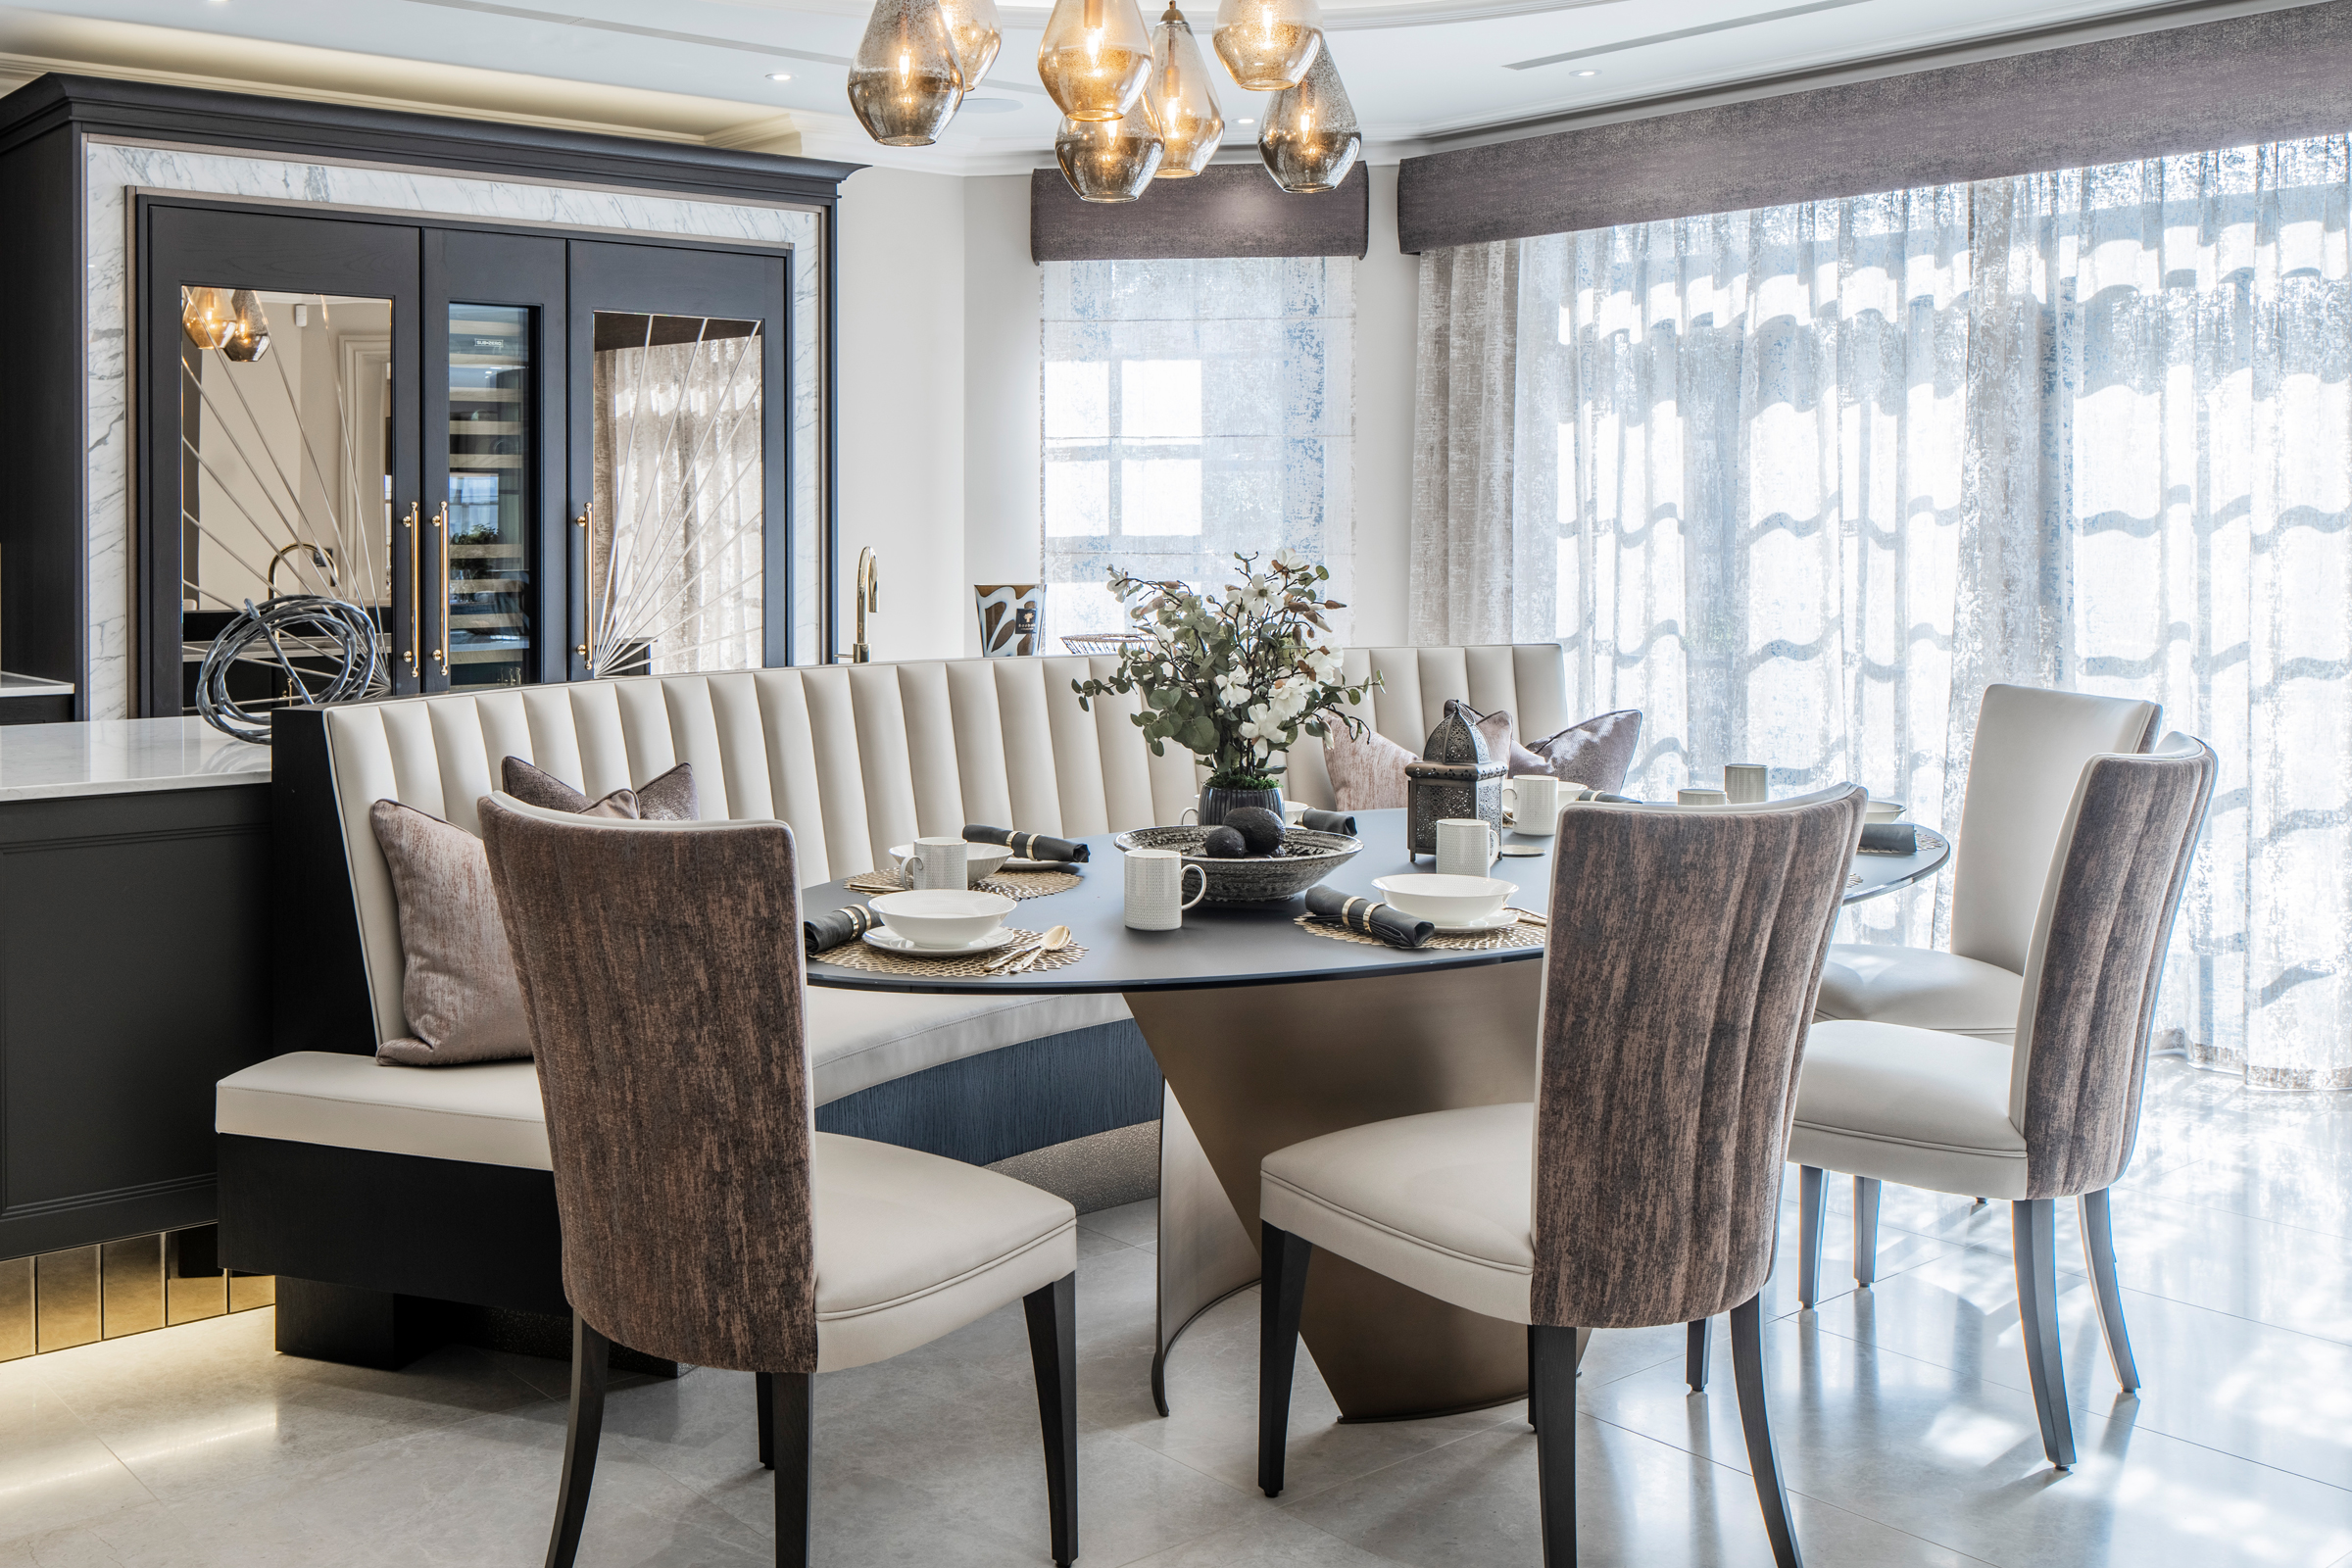 luxury kitchen banquette seating dining table